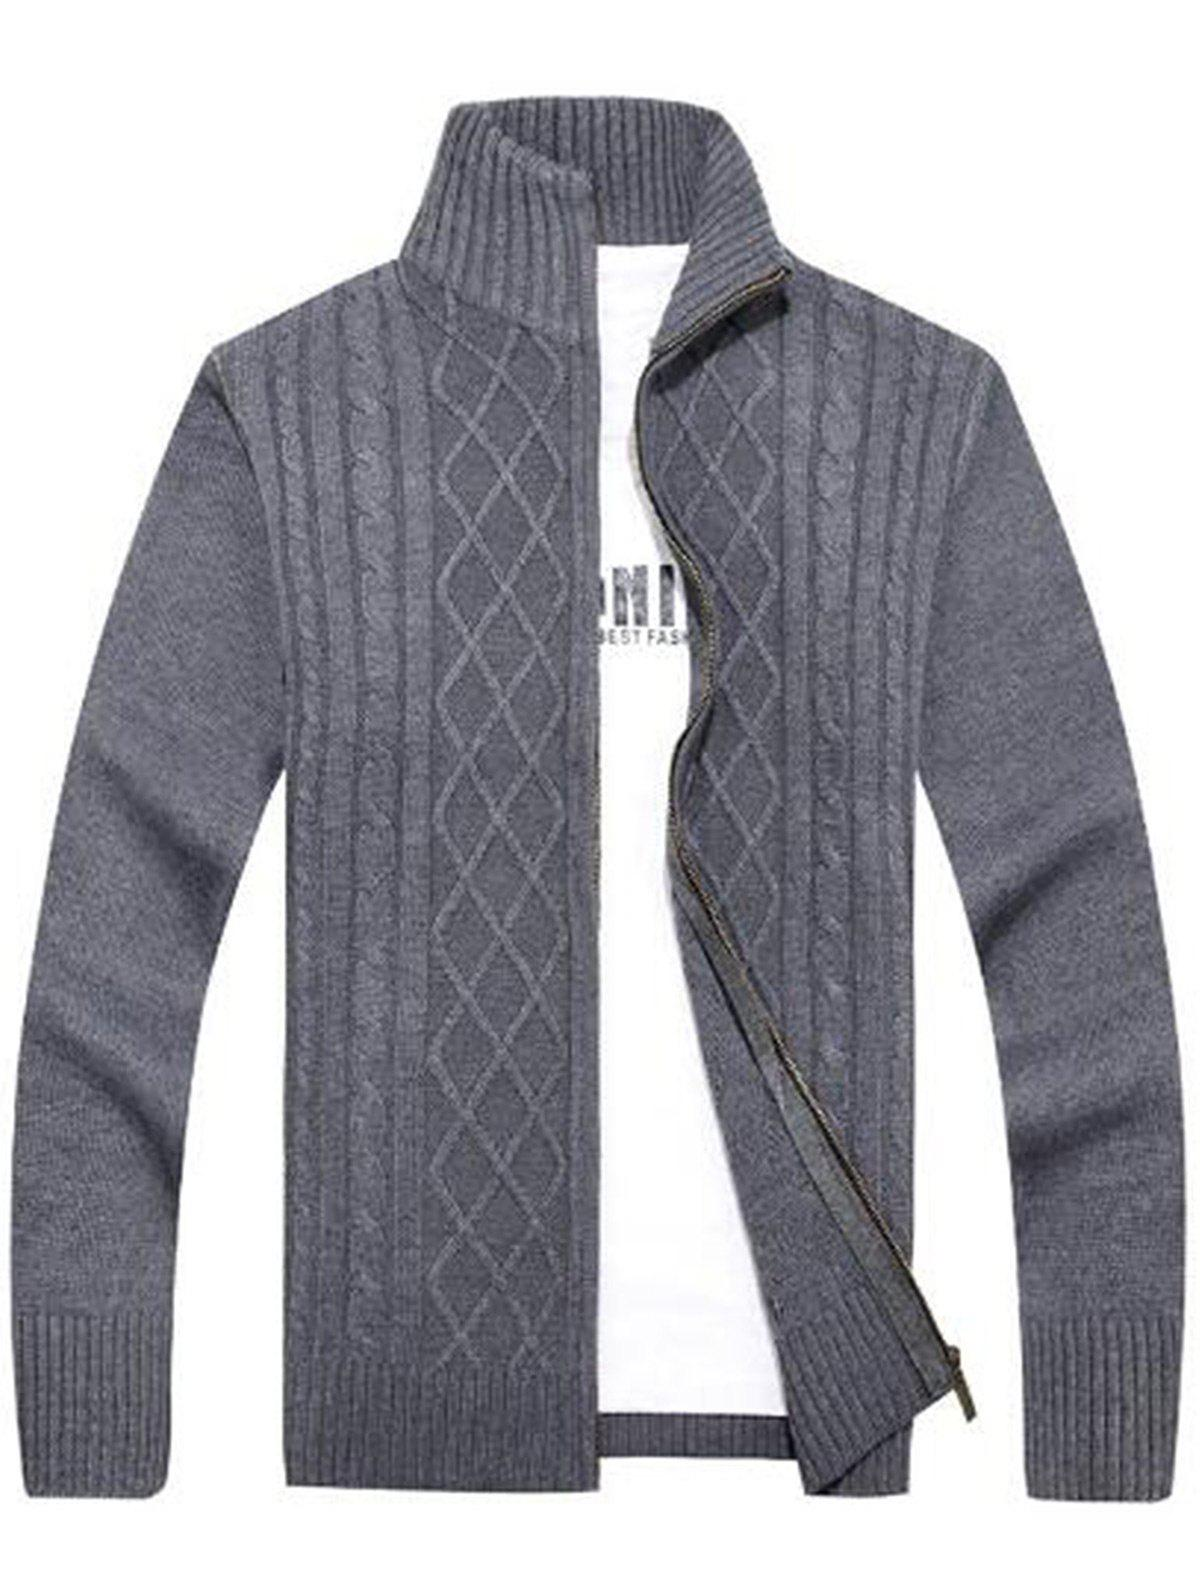 Cable Knit High Neck Sweater Cardigan cable knit high neck sweater cardigan